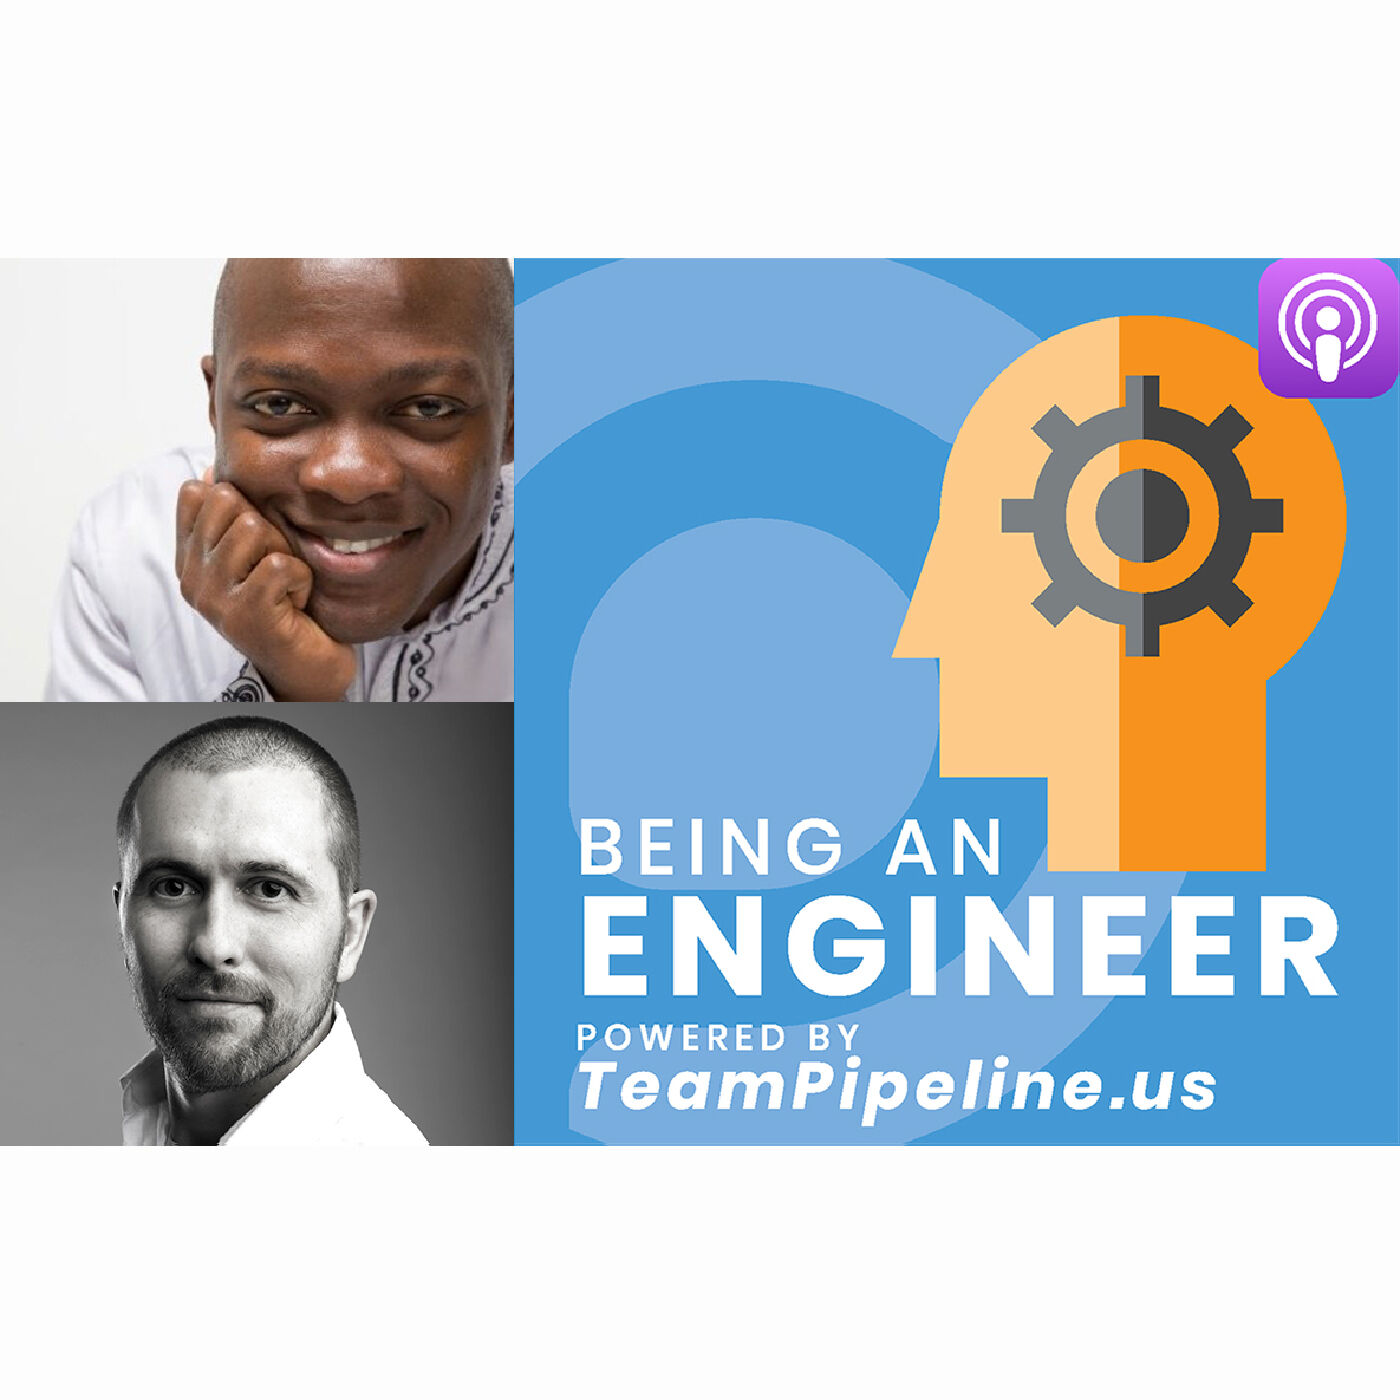 S2E015 Breaking Problems Down Into Actionable Pieces, & How to Develop Good Habits | Kehinde (I.T.) Majolagbe